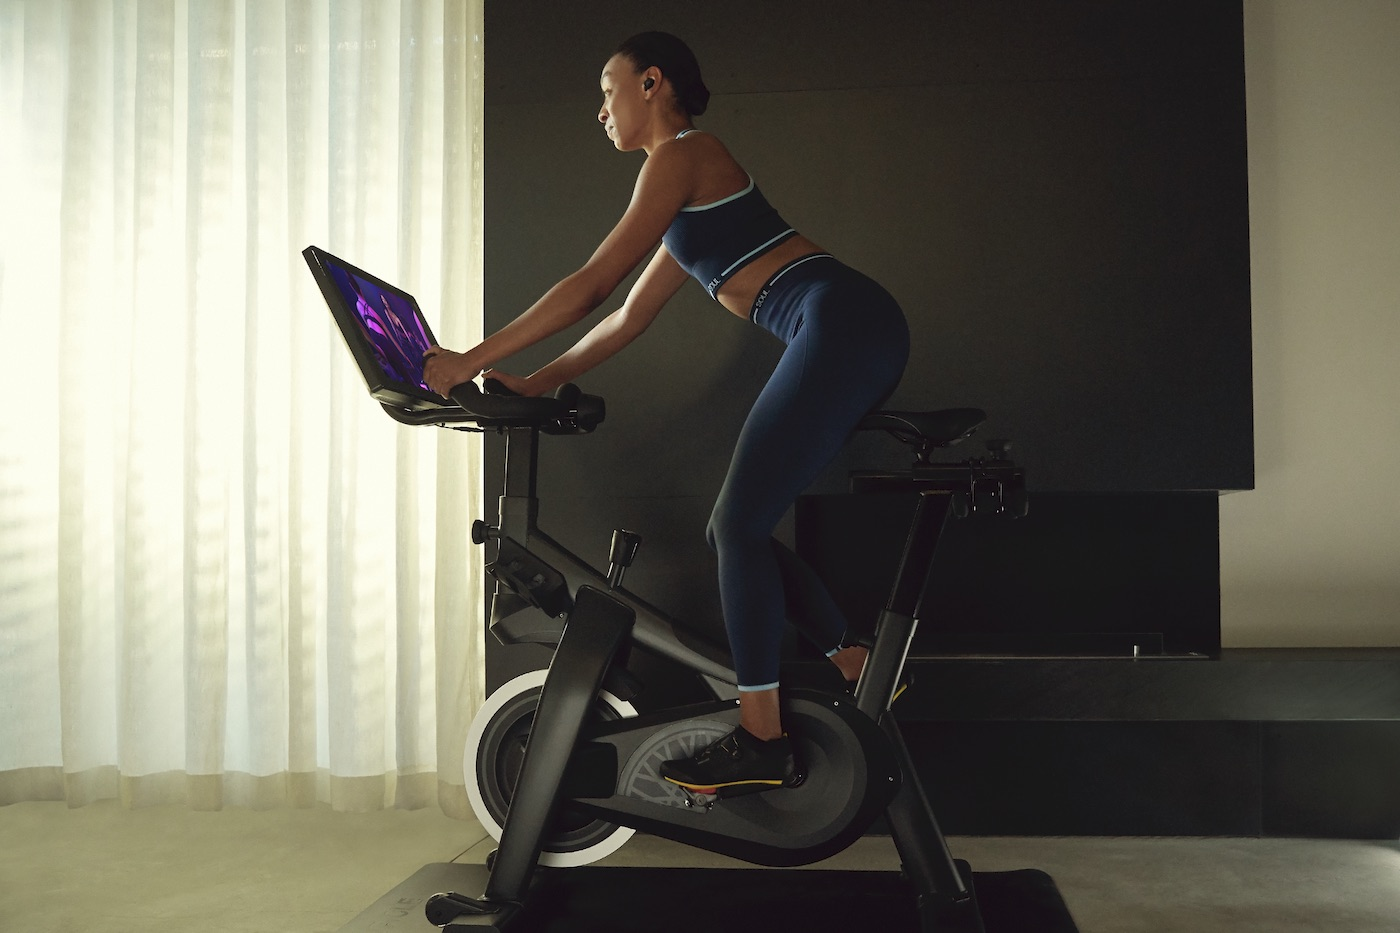 Thumbnail for SoulCycle is my favorite workout class—here are my honest thoughts on the new at-home bike